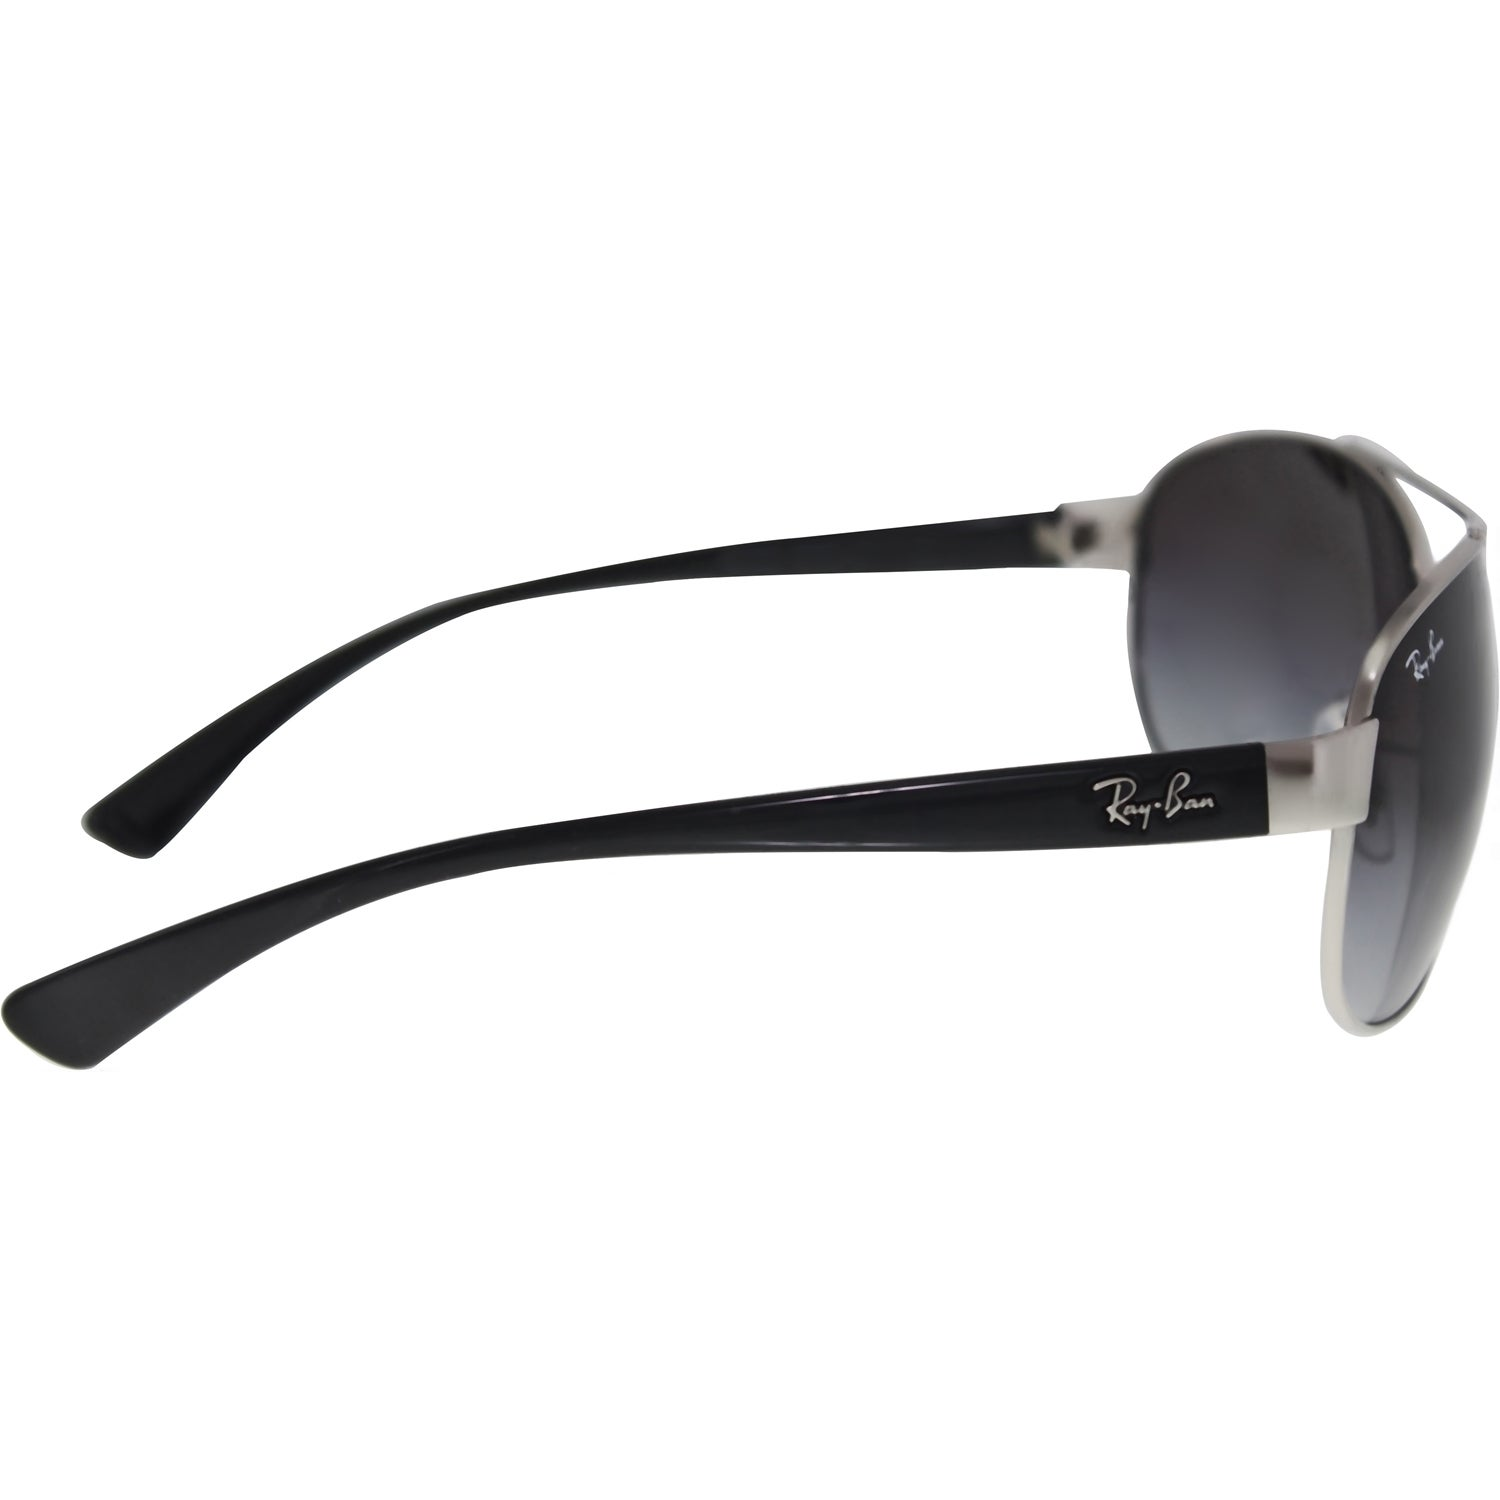 9b576f6ba5 Shop Ray-Ban RB3386 003 8G Silver Black Frame Grey Gradient 67mm Lens  Sunglasses - Free Shipping Today - Overstock - 14327958